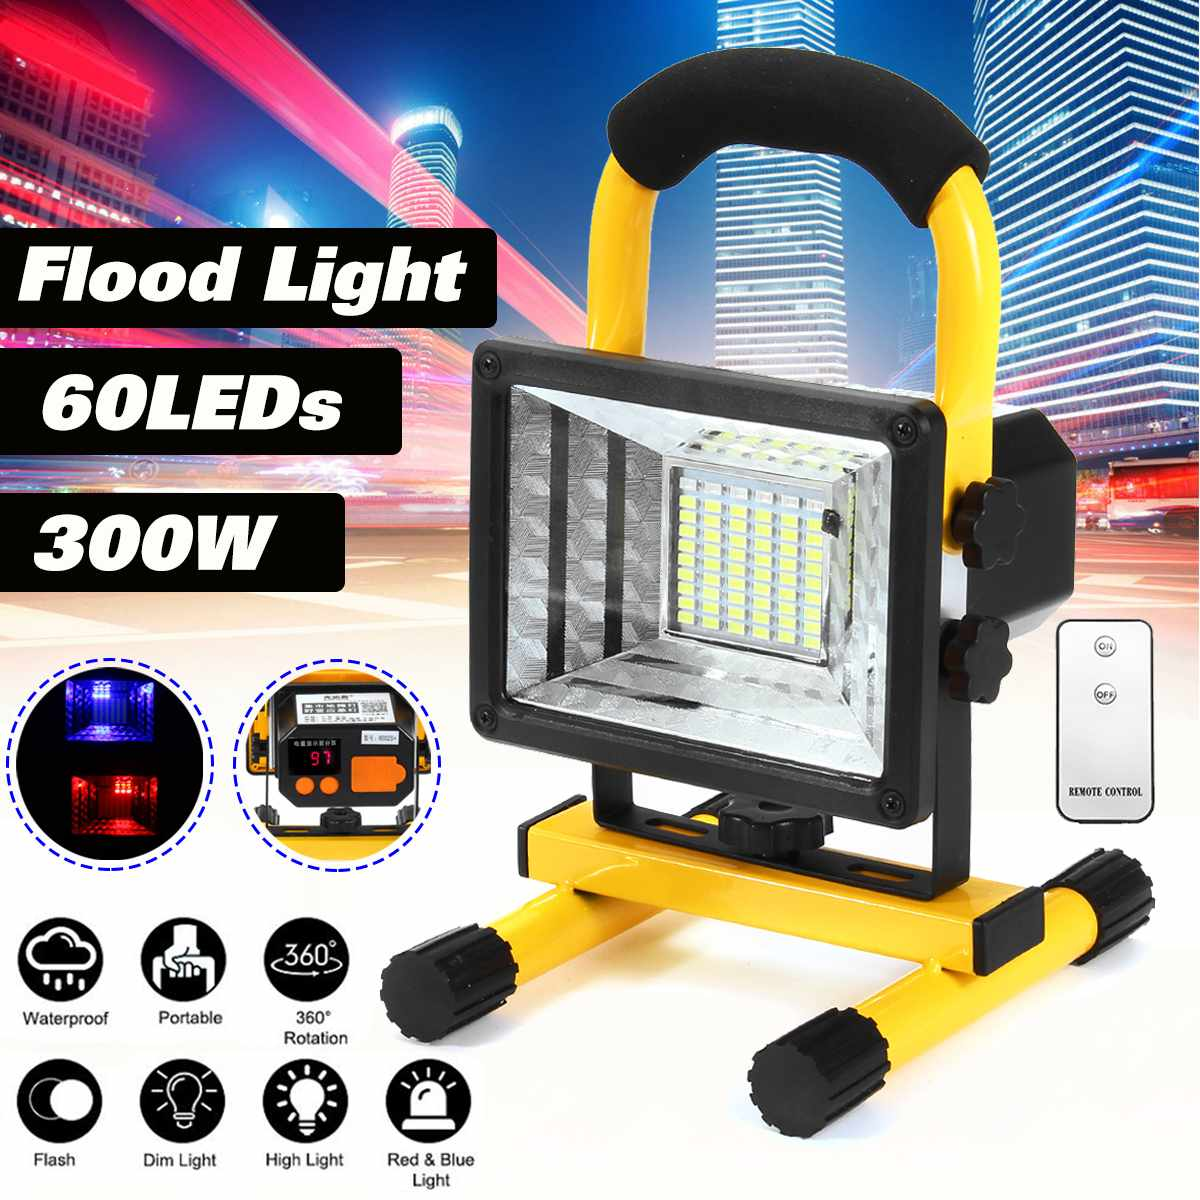 New 300W <font><b>60</b></font> <font><b>LED</b></font> Portable <font><b>Rechargeable</b></font> Floodlight Waterproof Outdoor Handheld Work <font><b>Lights</b></font> Power By 18650 Portable Lantern image